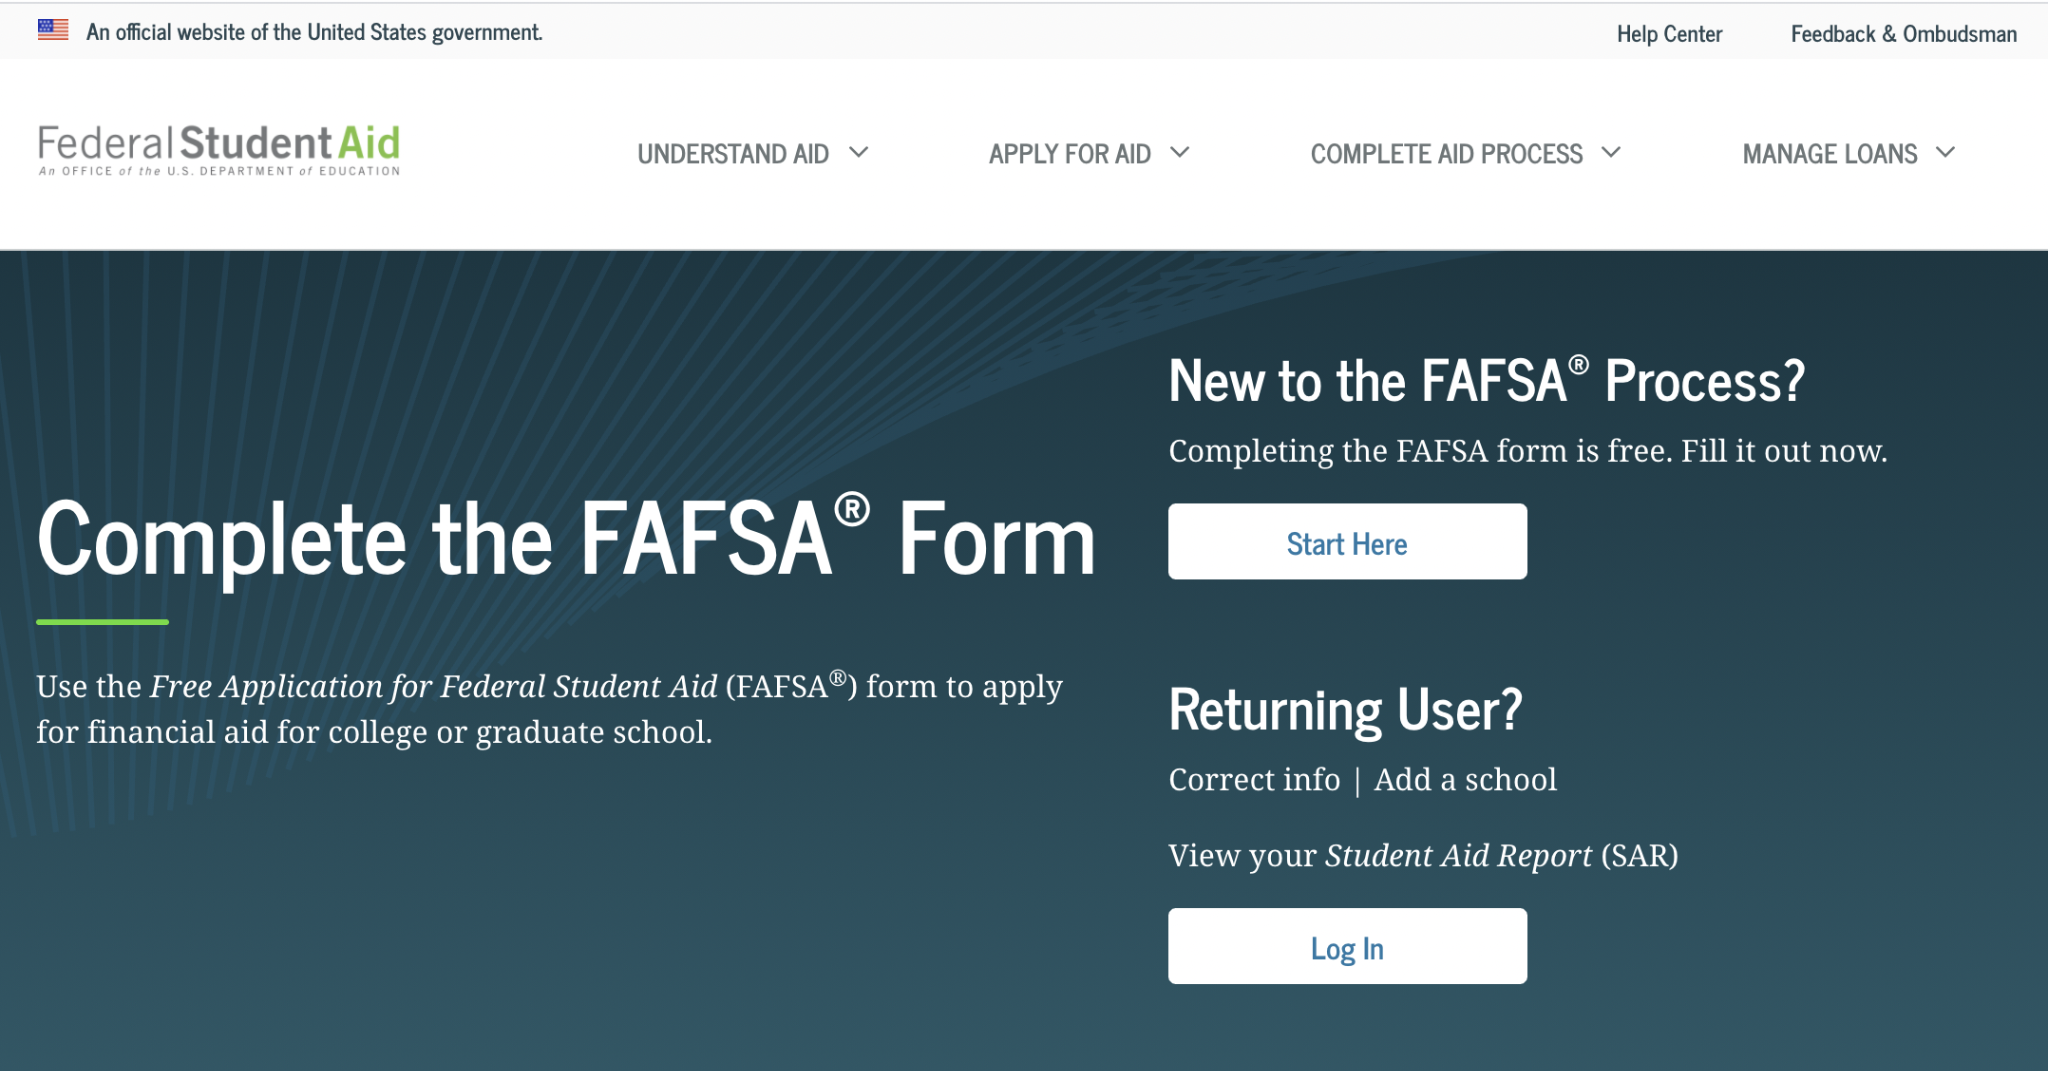 FAFSA website home page